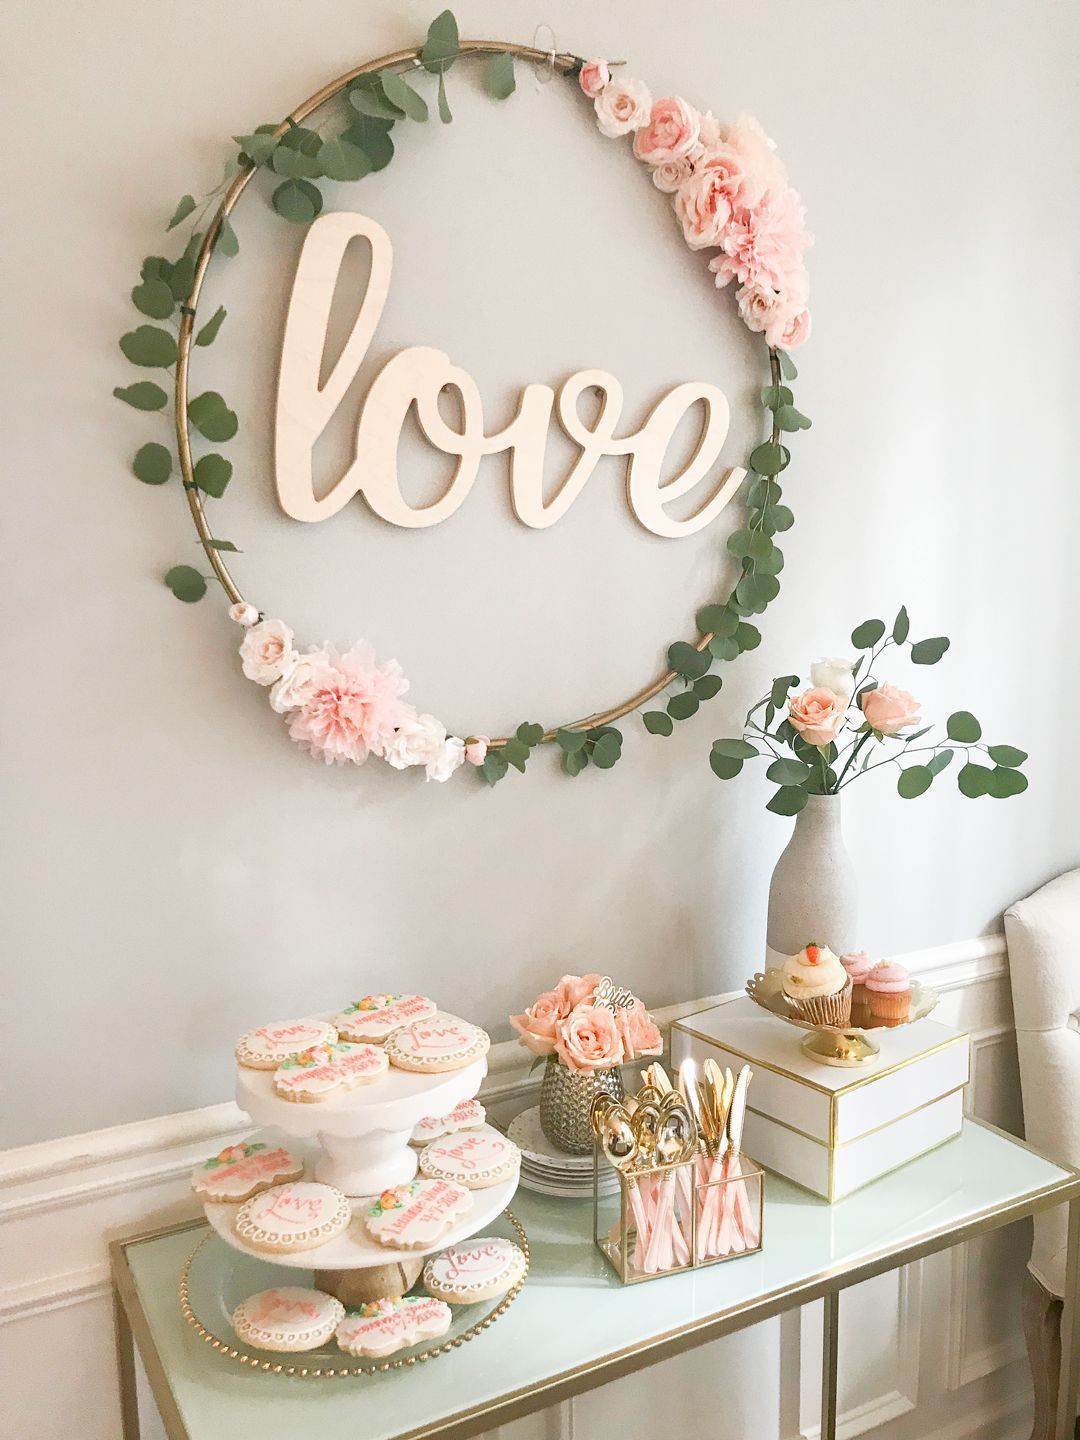 Hens Party Round Sign Wood Wall Hoop 30cm-90cm bridal shower wedding decorations